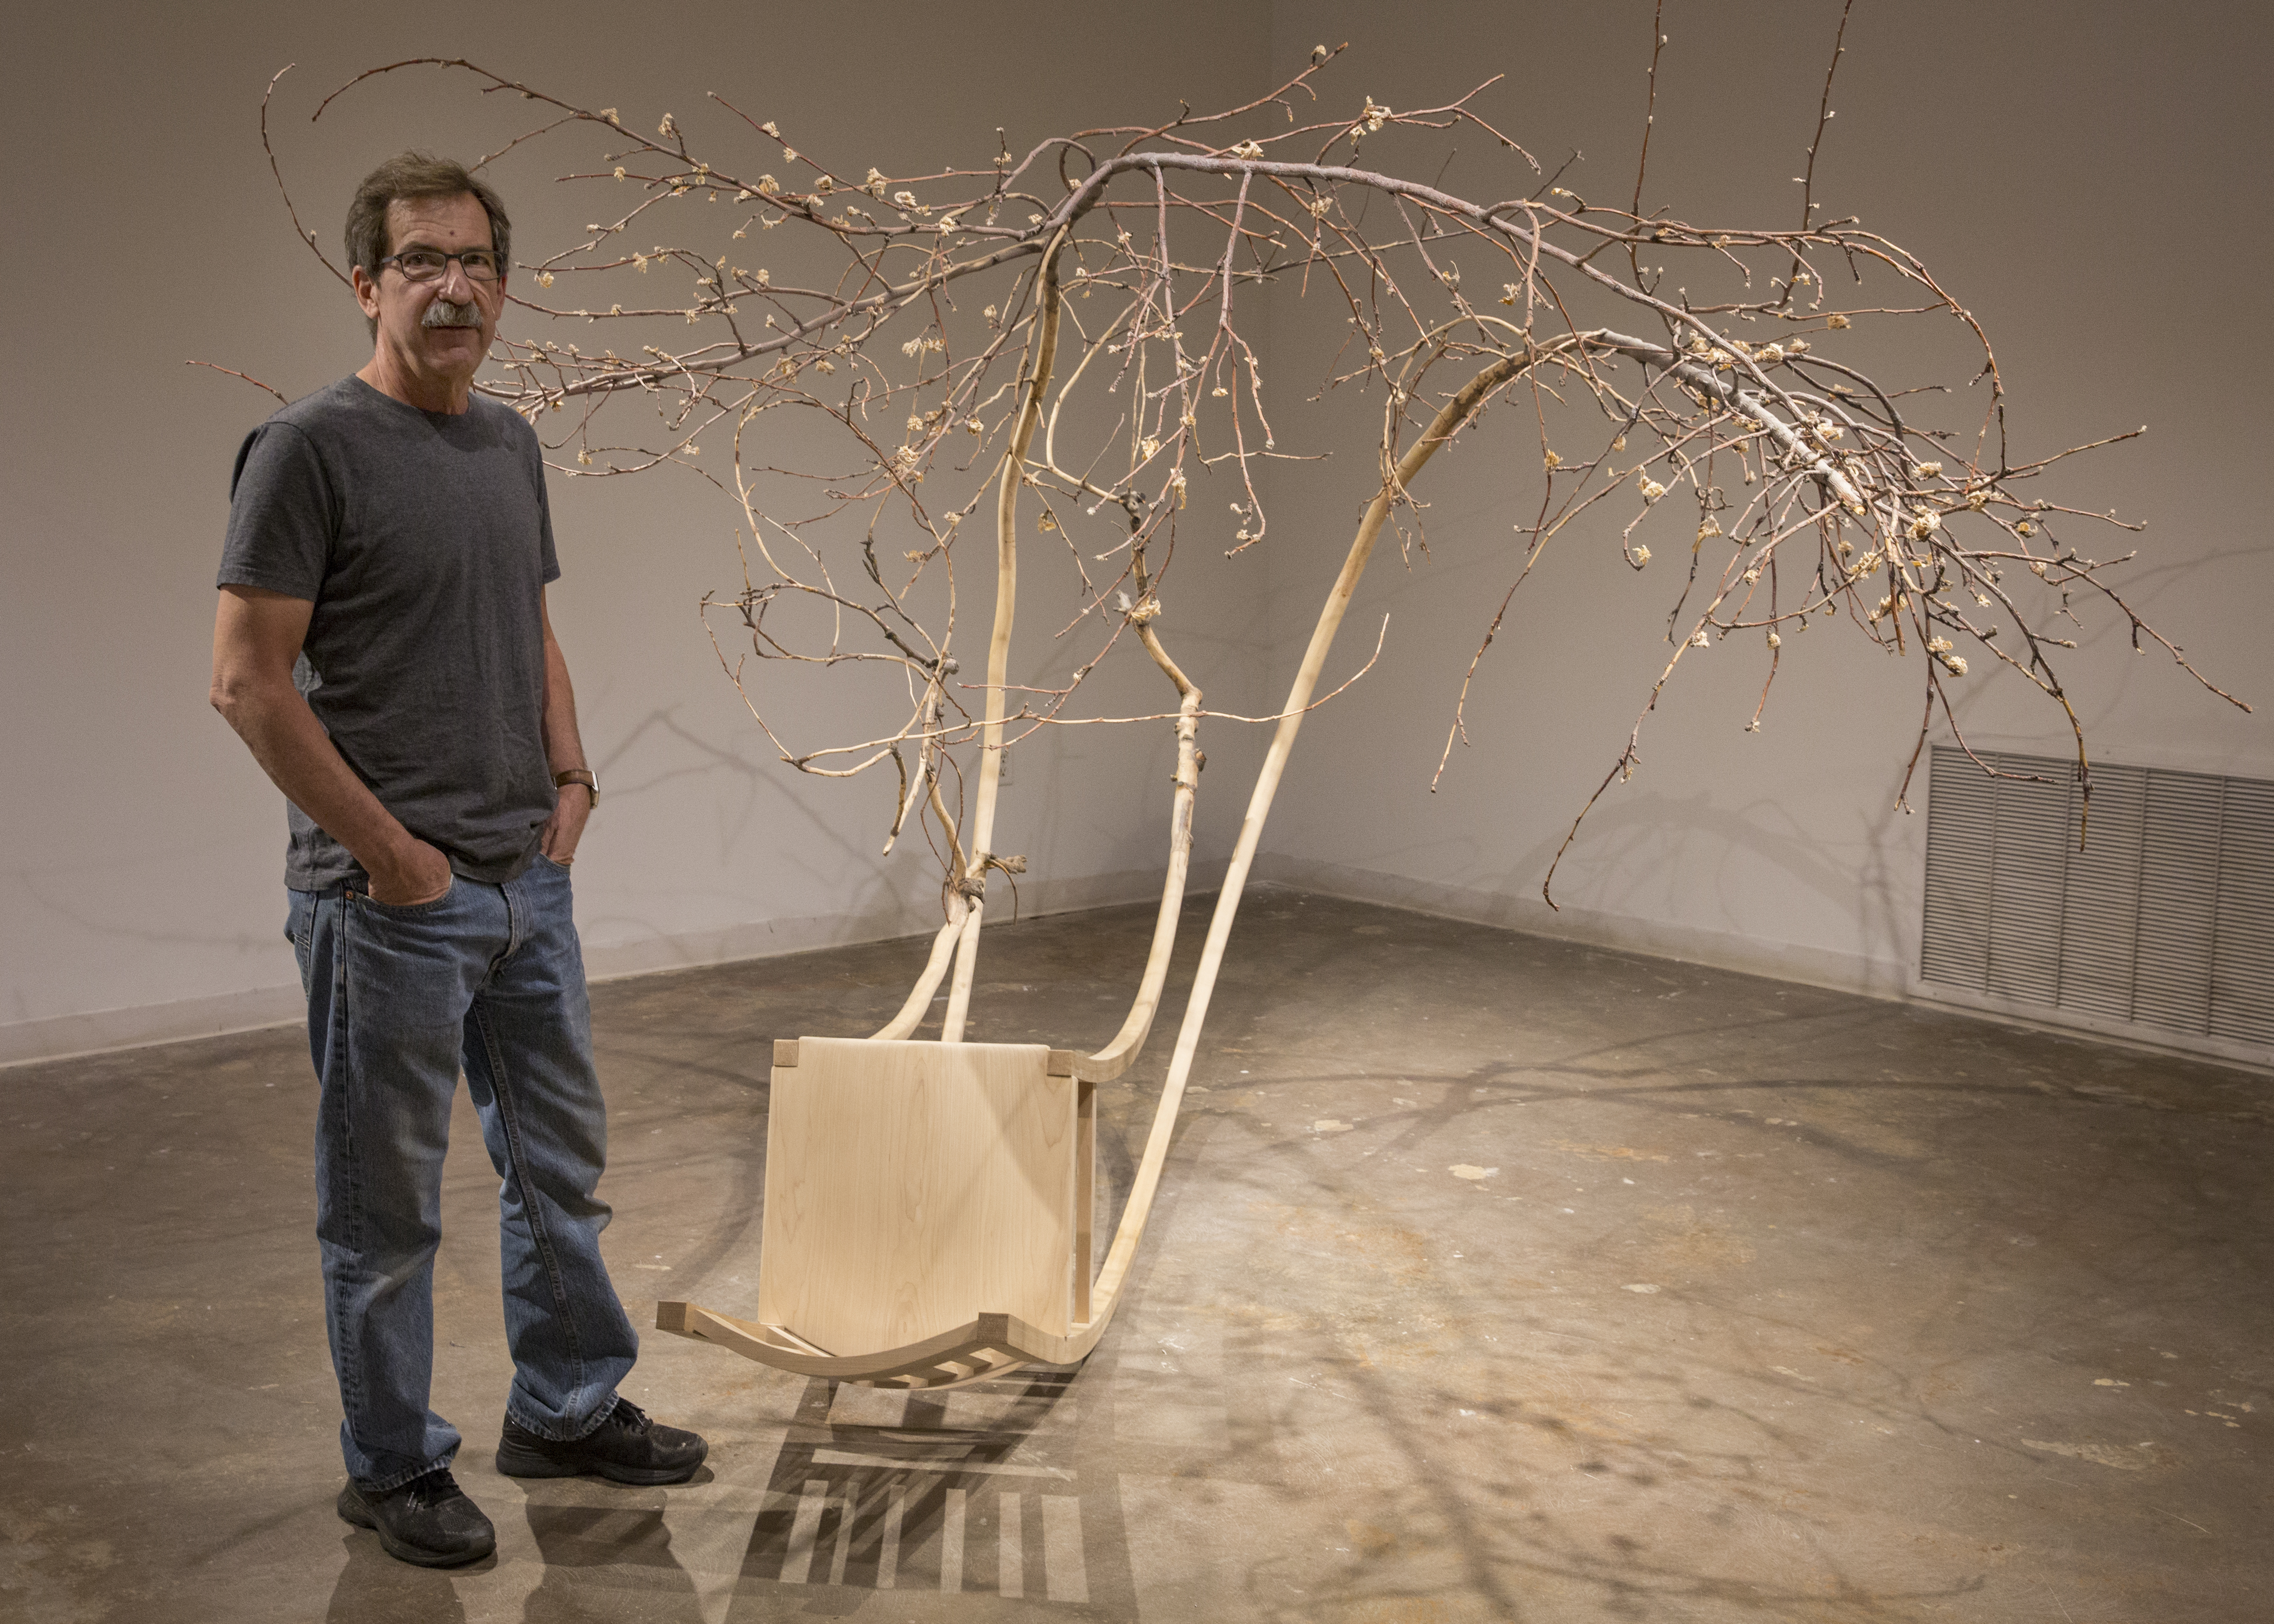 Jim Jacobs' sculptures focus on the 'Imperfections That Render Us Visible'